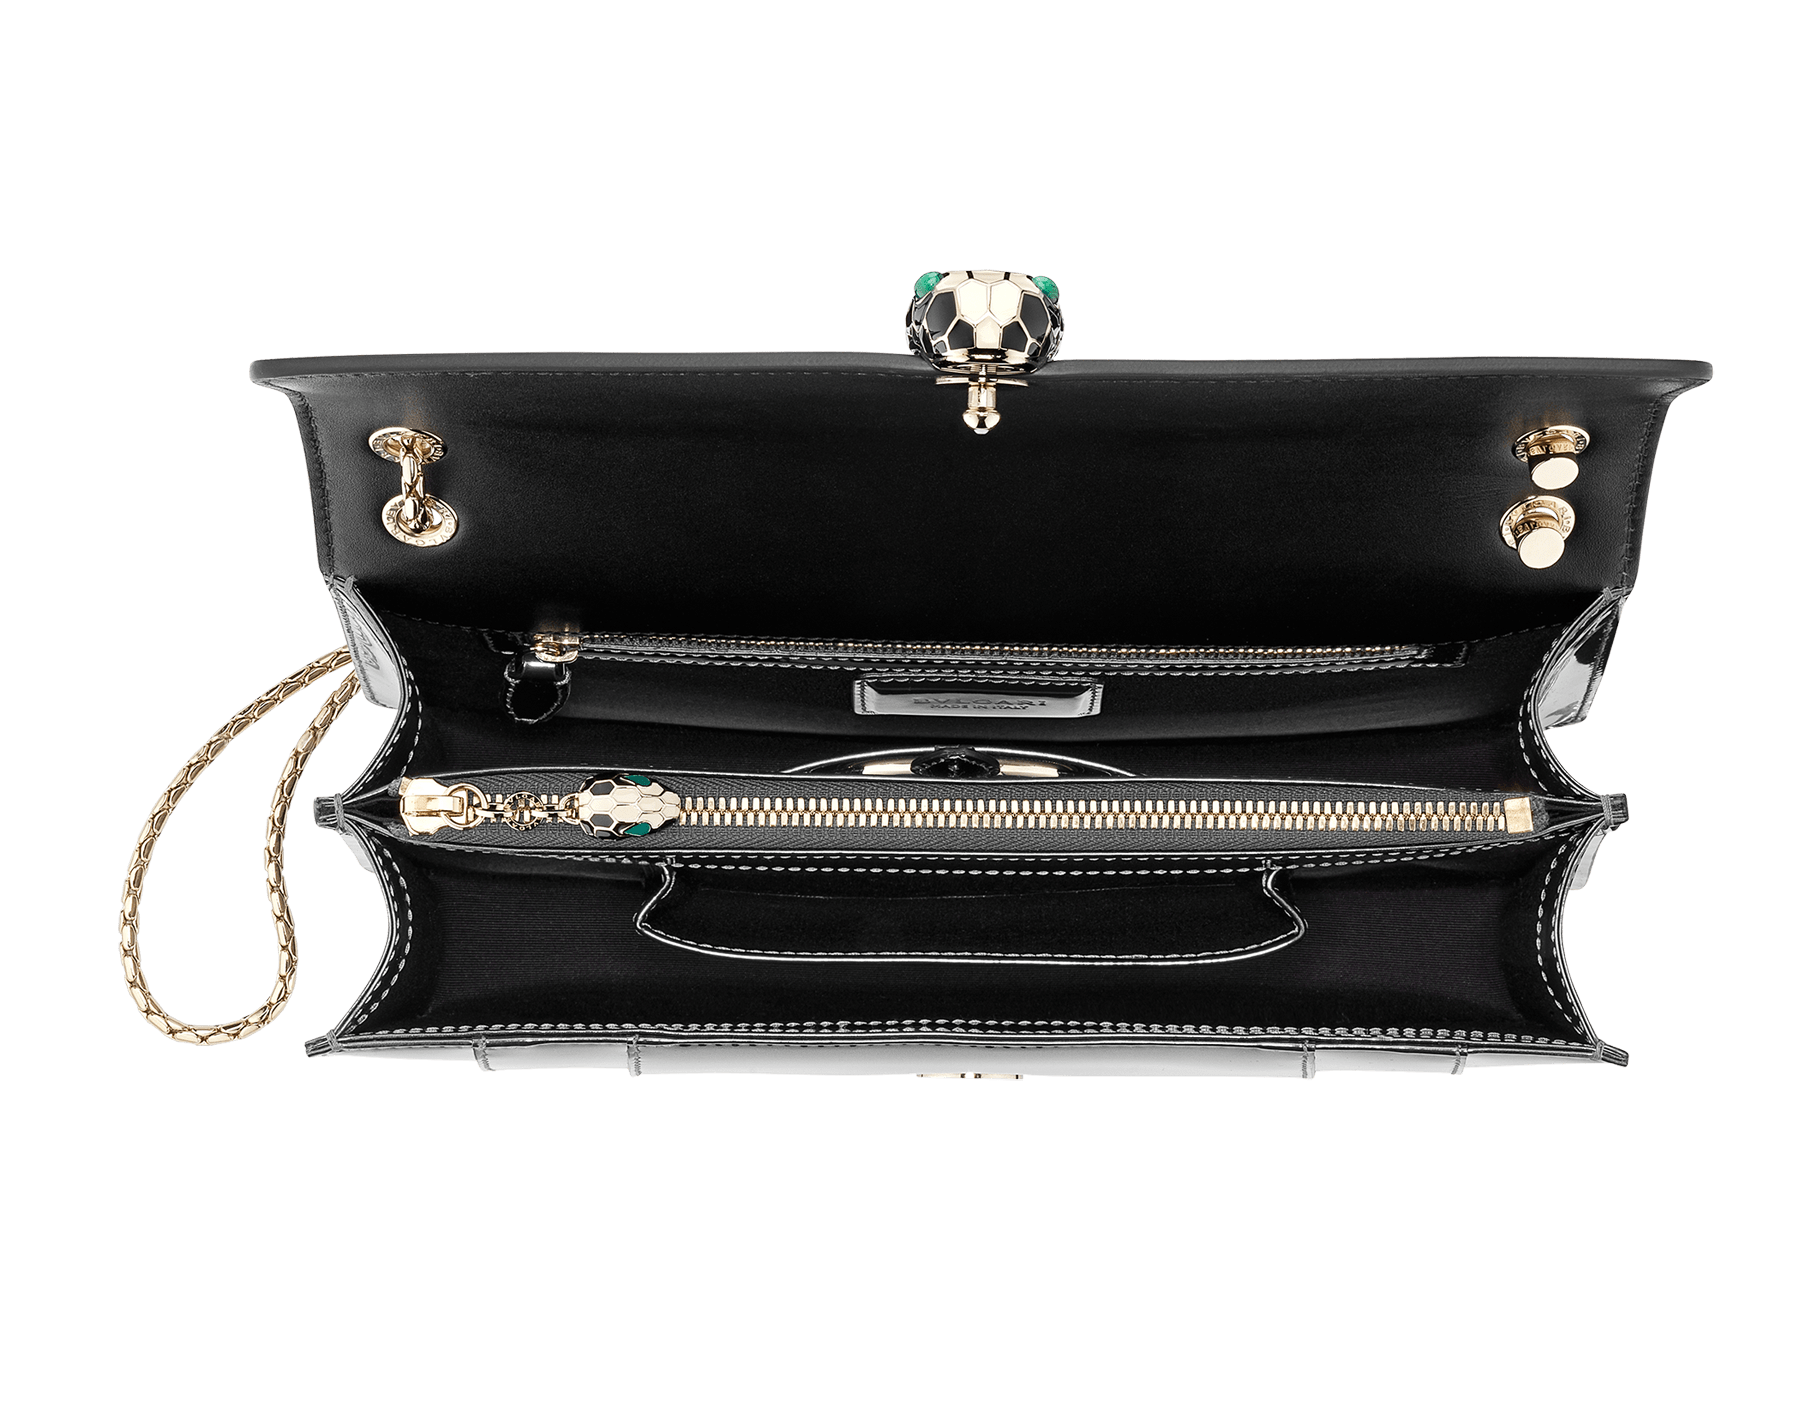 Flap cover bag Serpenti Forever in mirage shiny silver brushed metallic calf leather. Brass light gold plated snake head closure in black and white enamel with eyes in green malachite. 39793 image 4